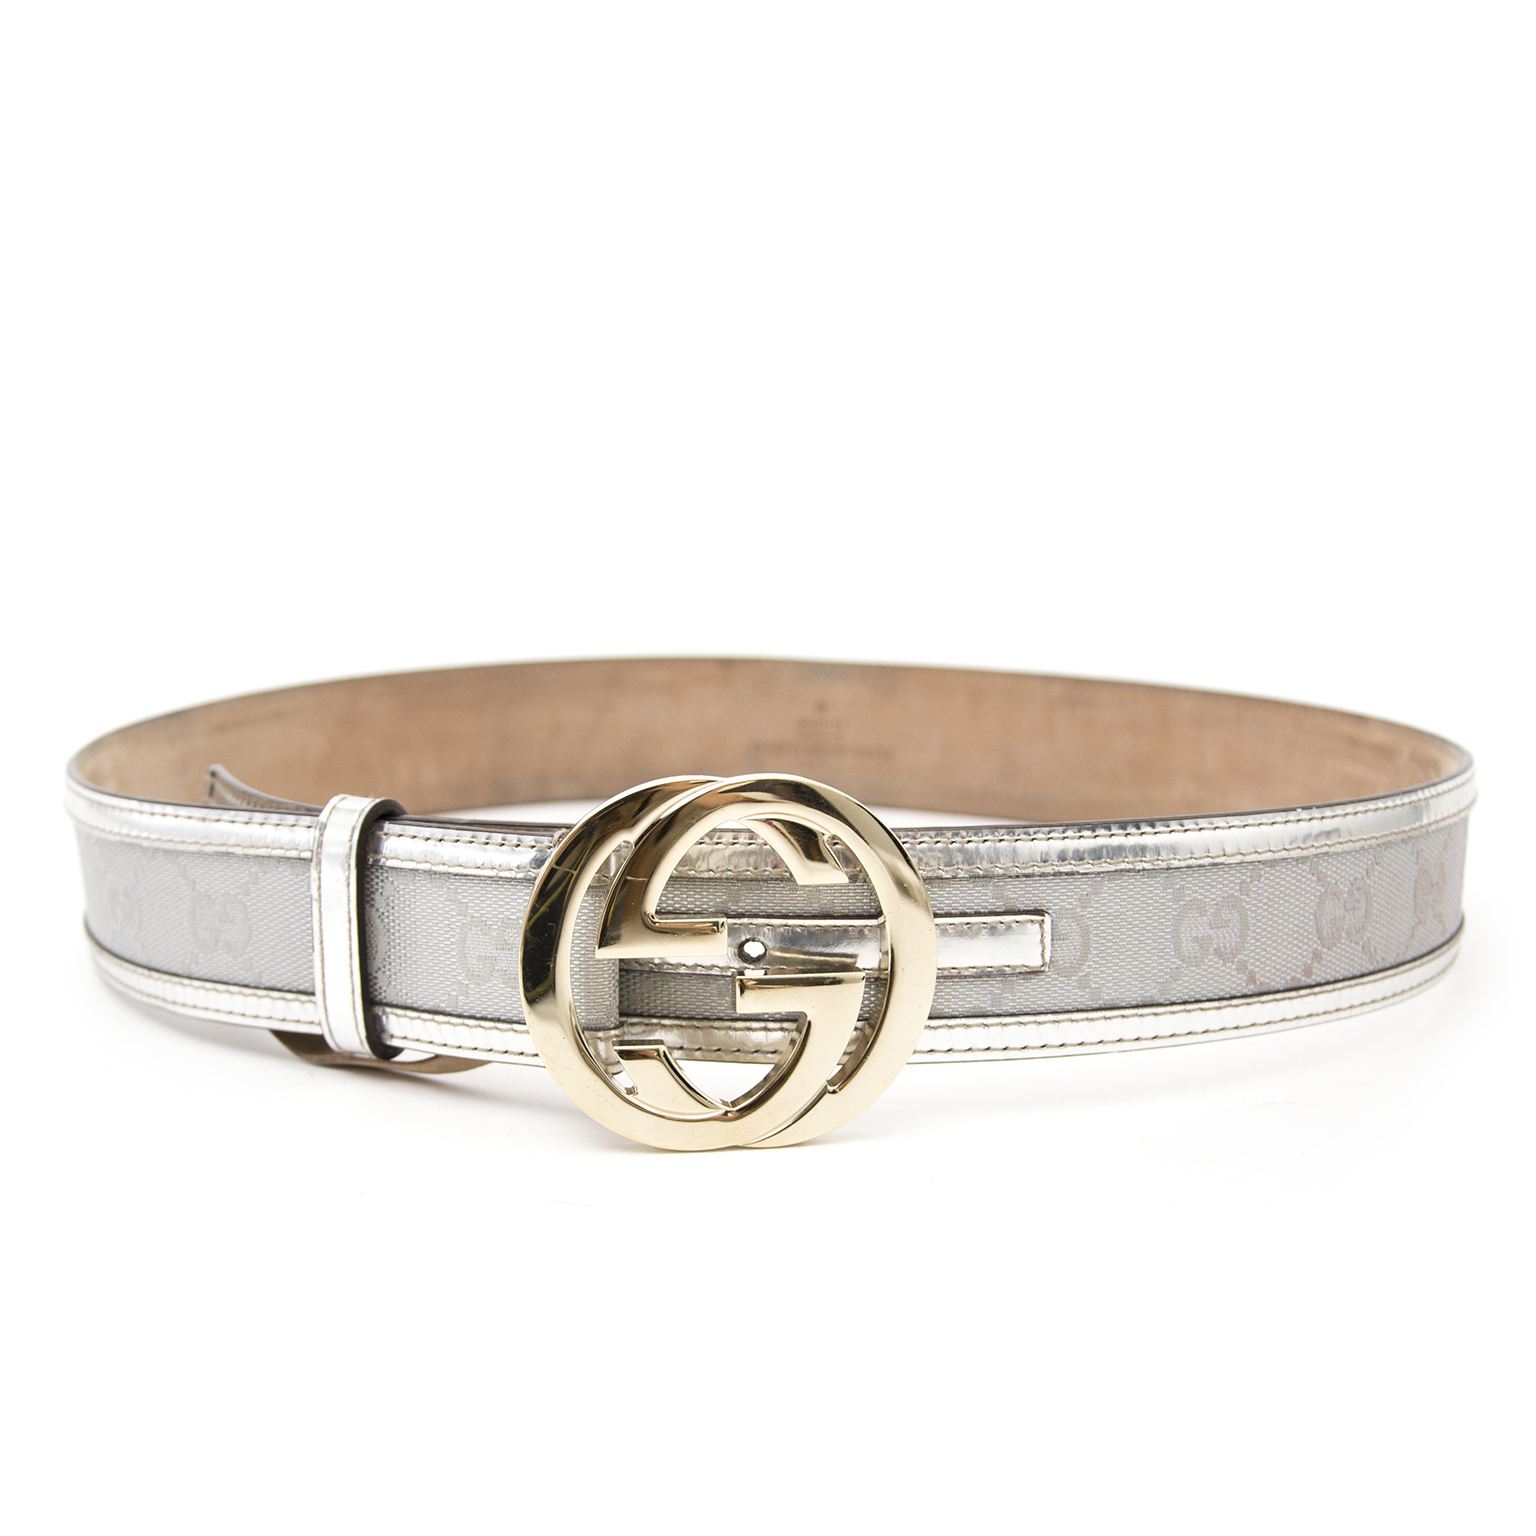 Vintage Gucci Fabric and Leather Silver Belt kopen